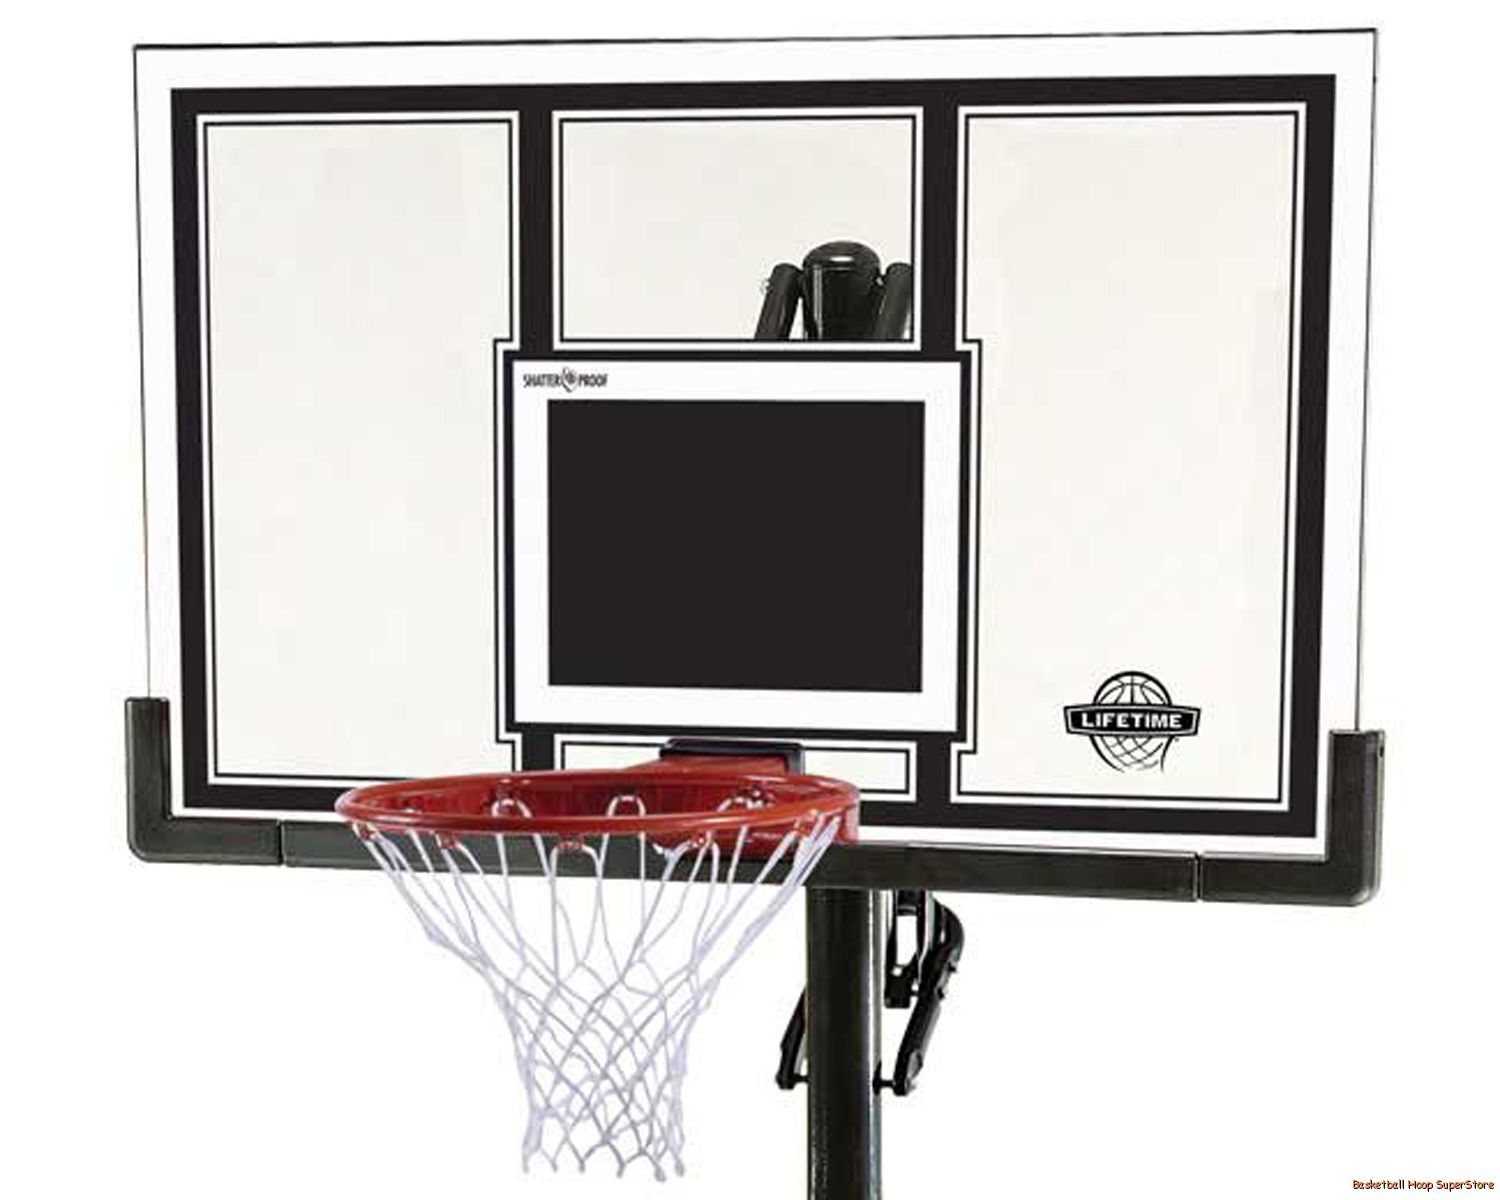 Review of Lifetime 71525 In-Ground Basketball System with 54-Inch Shatter Guard Backboard